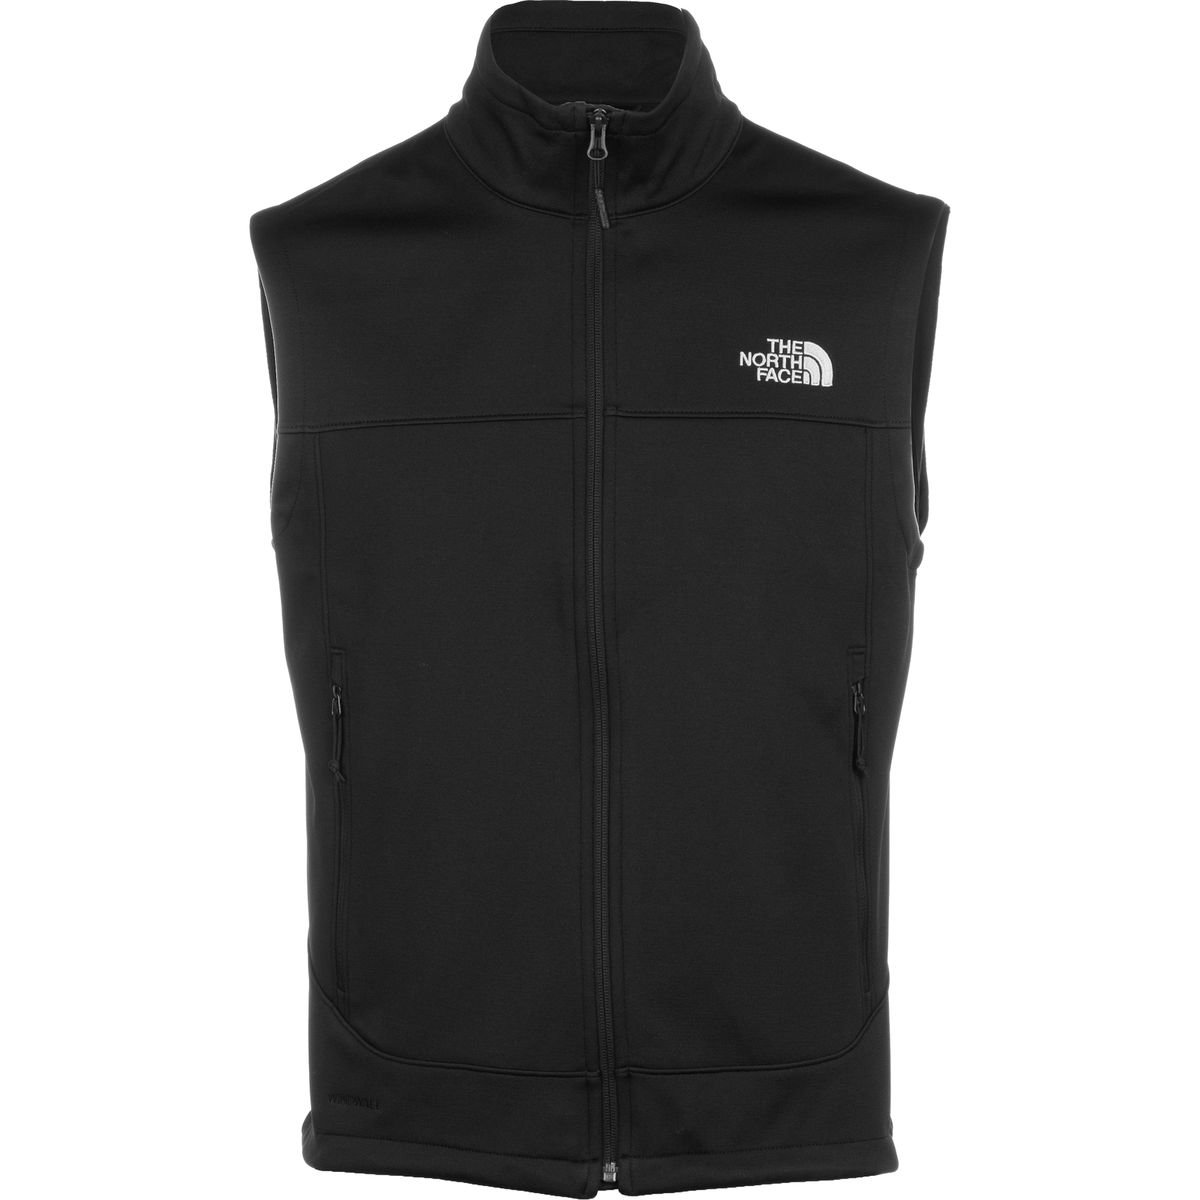 8a916b24e The North Face Men's Canyonwall Vest